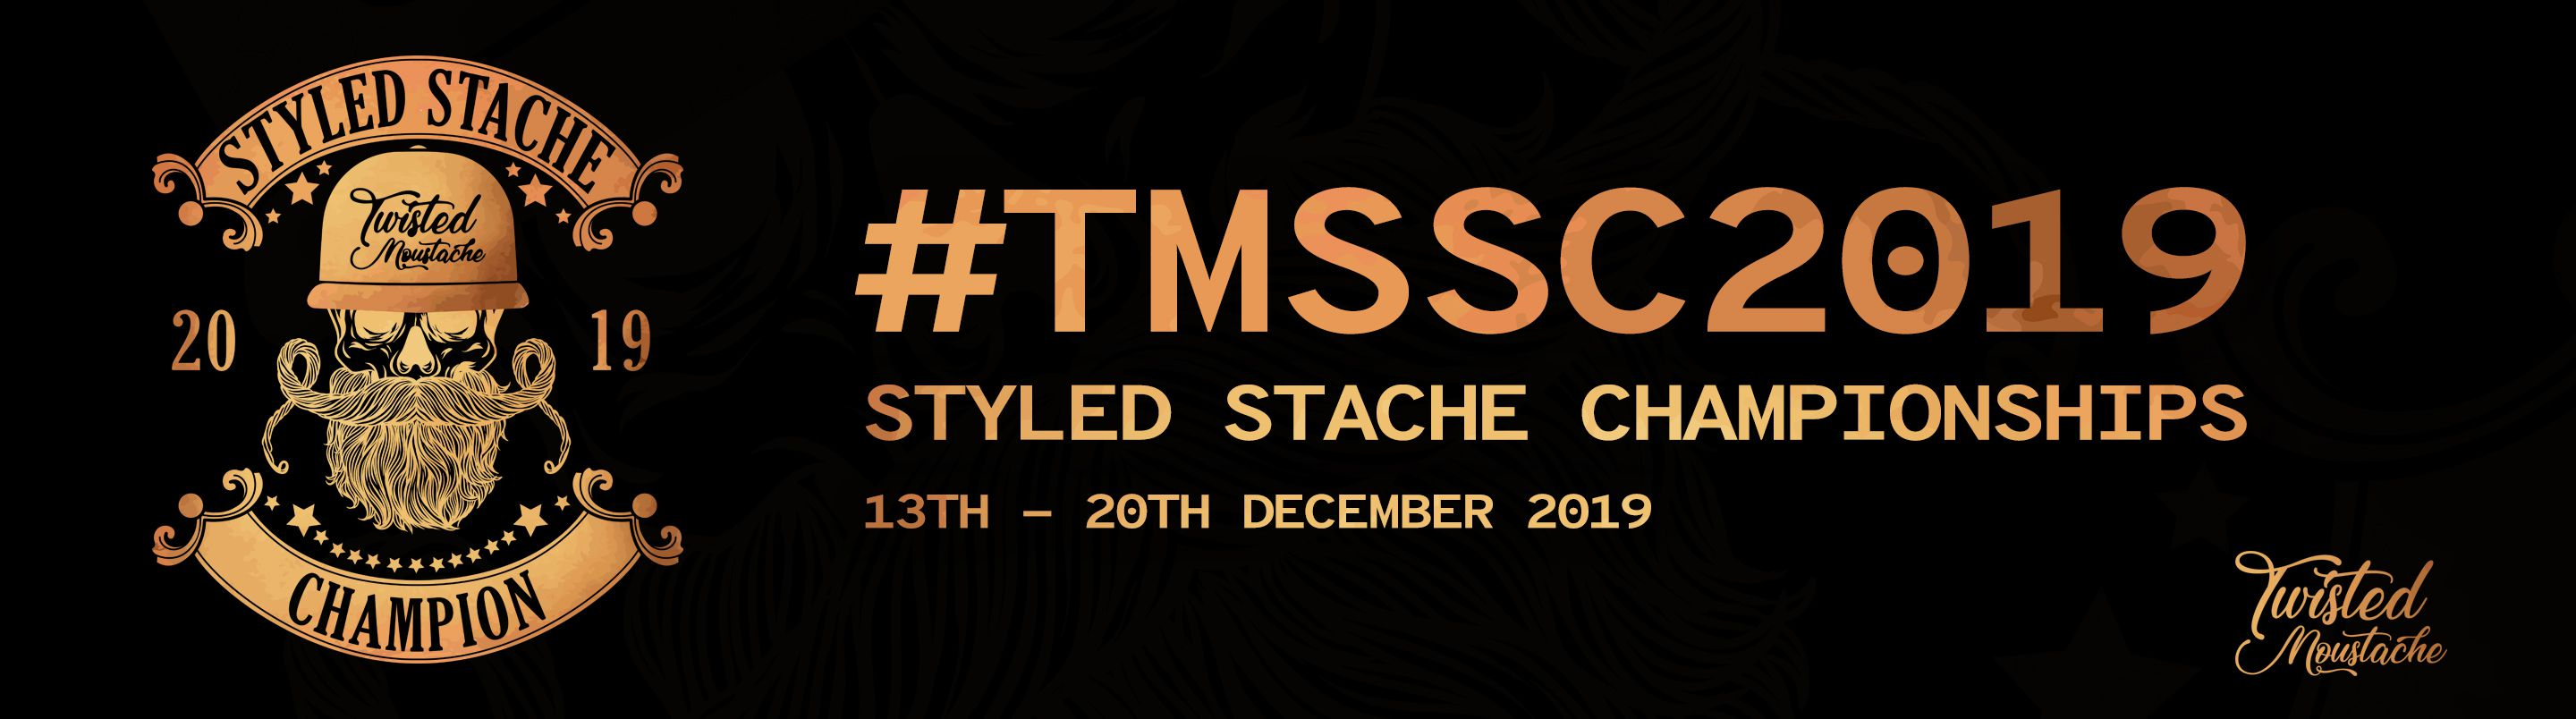 Twisted Moustache Stayled Stache Championships 2019